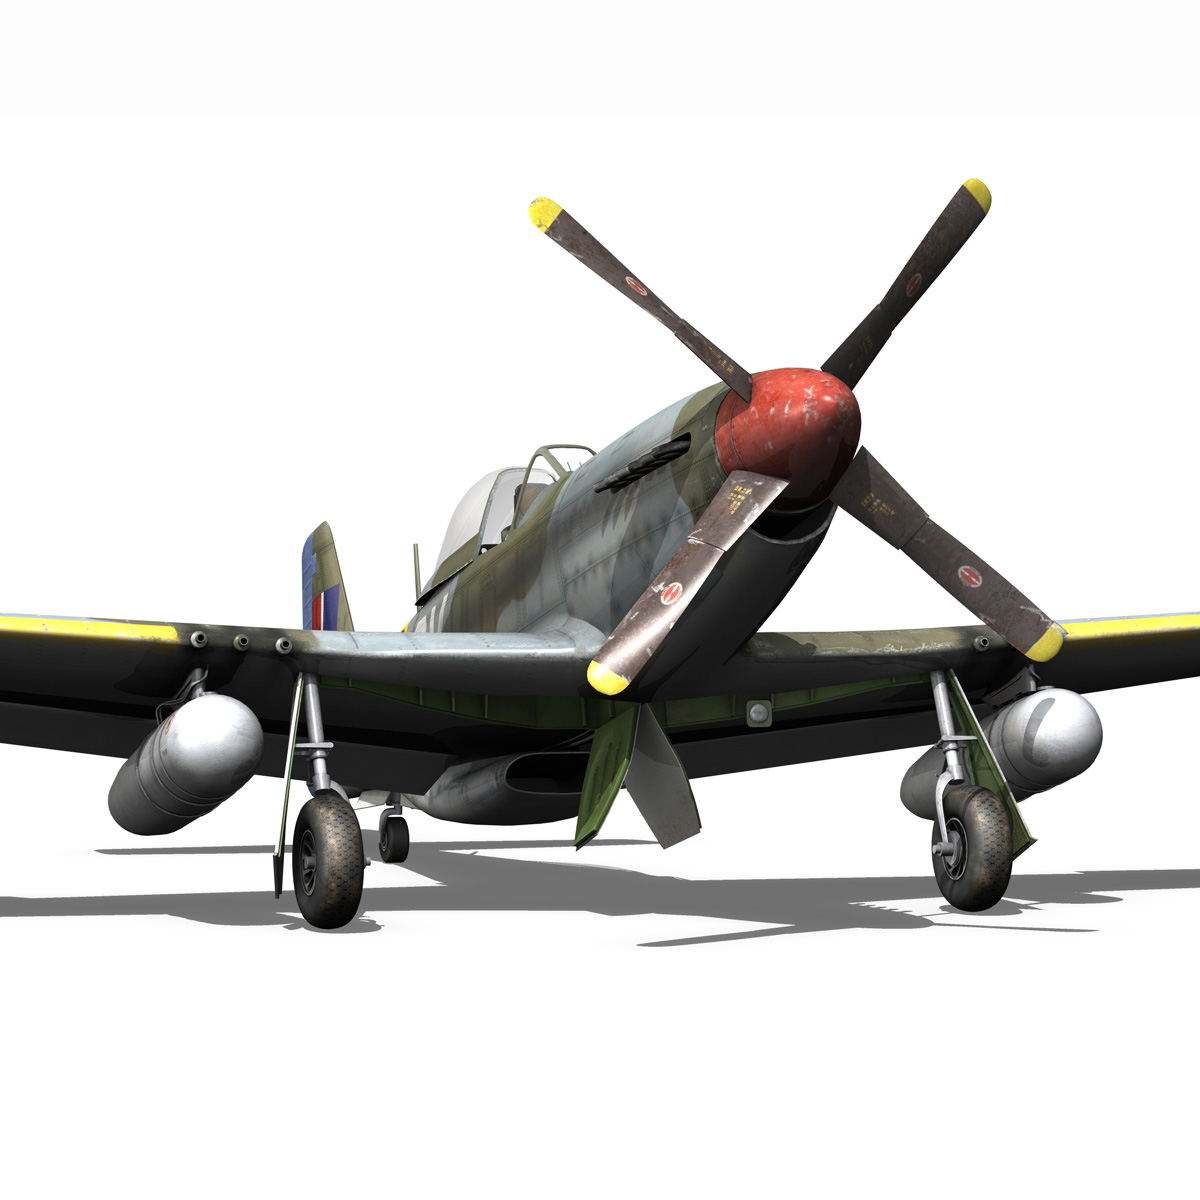 north american p-51d – cv-g 3d model 3ds fbx c4d lwo obj 188572